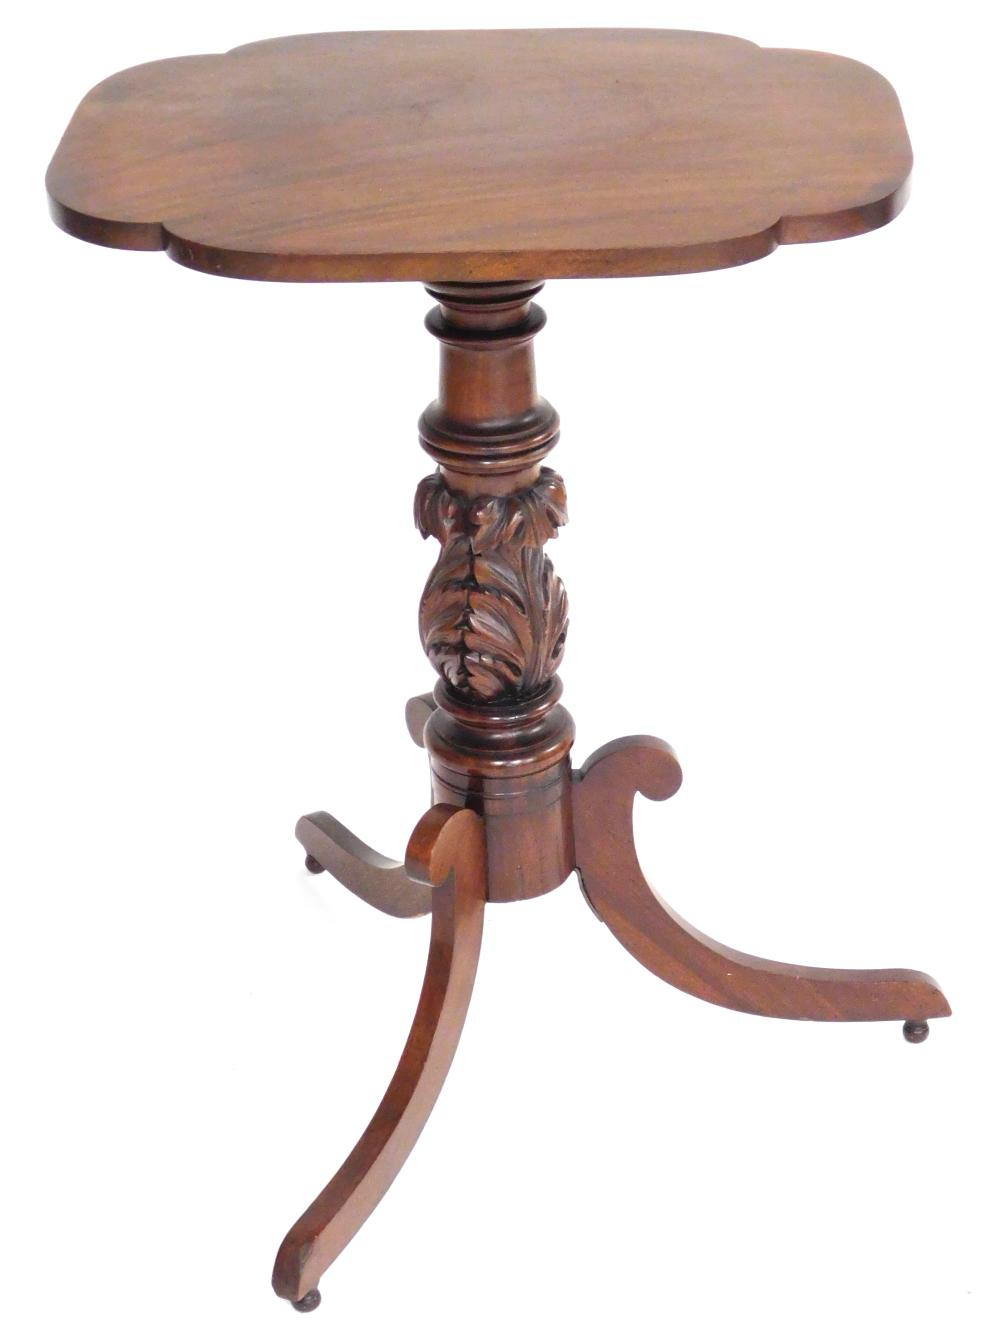 Late Federal tilt top stand, mahogany, oblong top with rounded incut corners over a nicely carved standard with acanthus leaf decora...